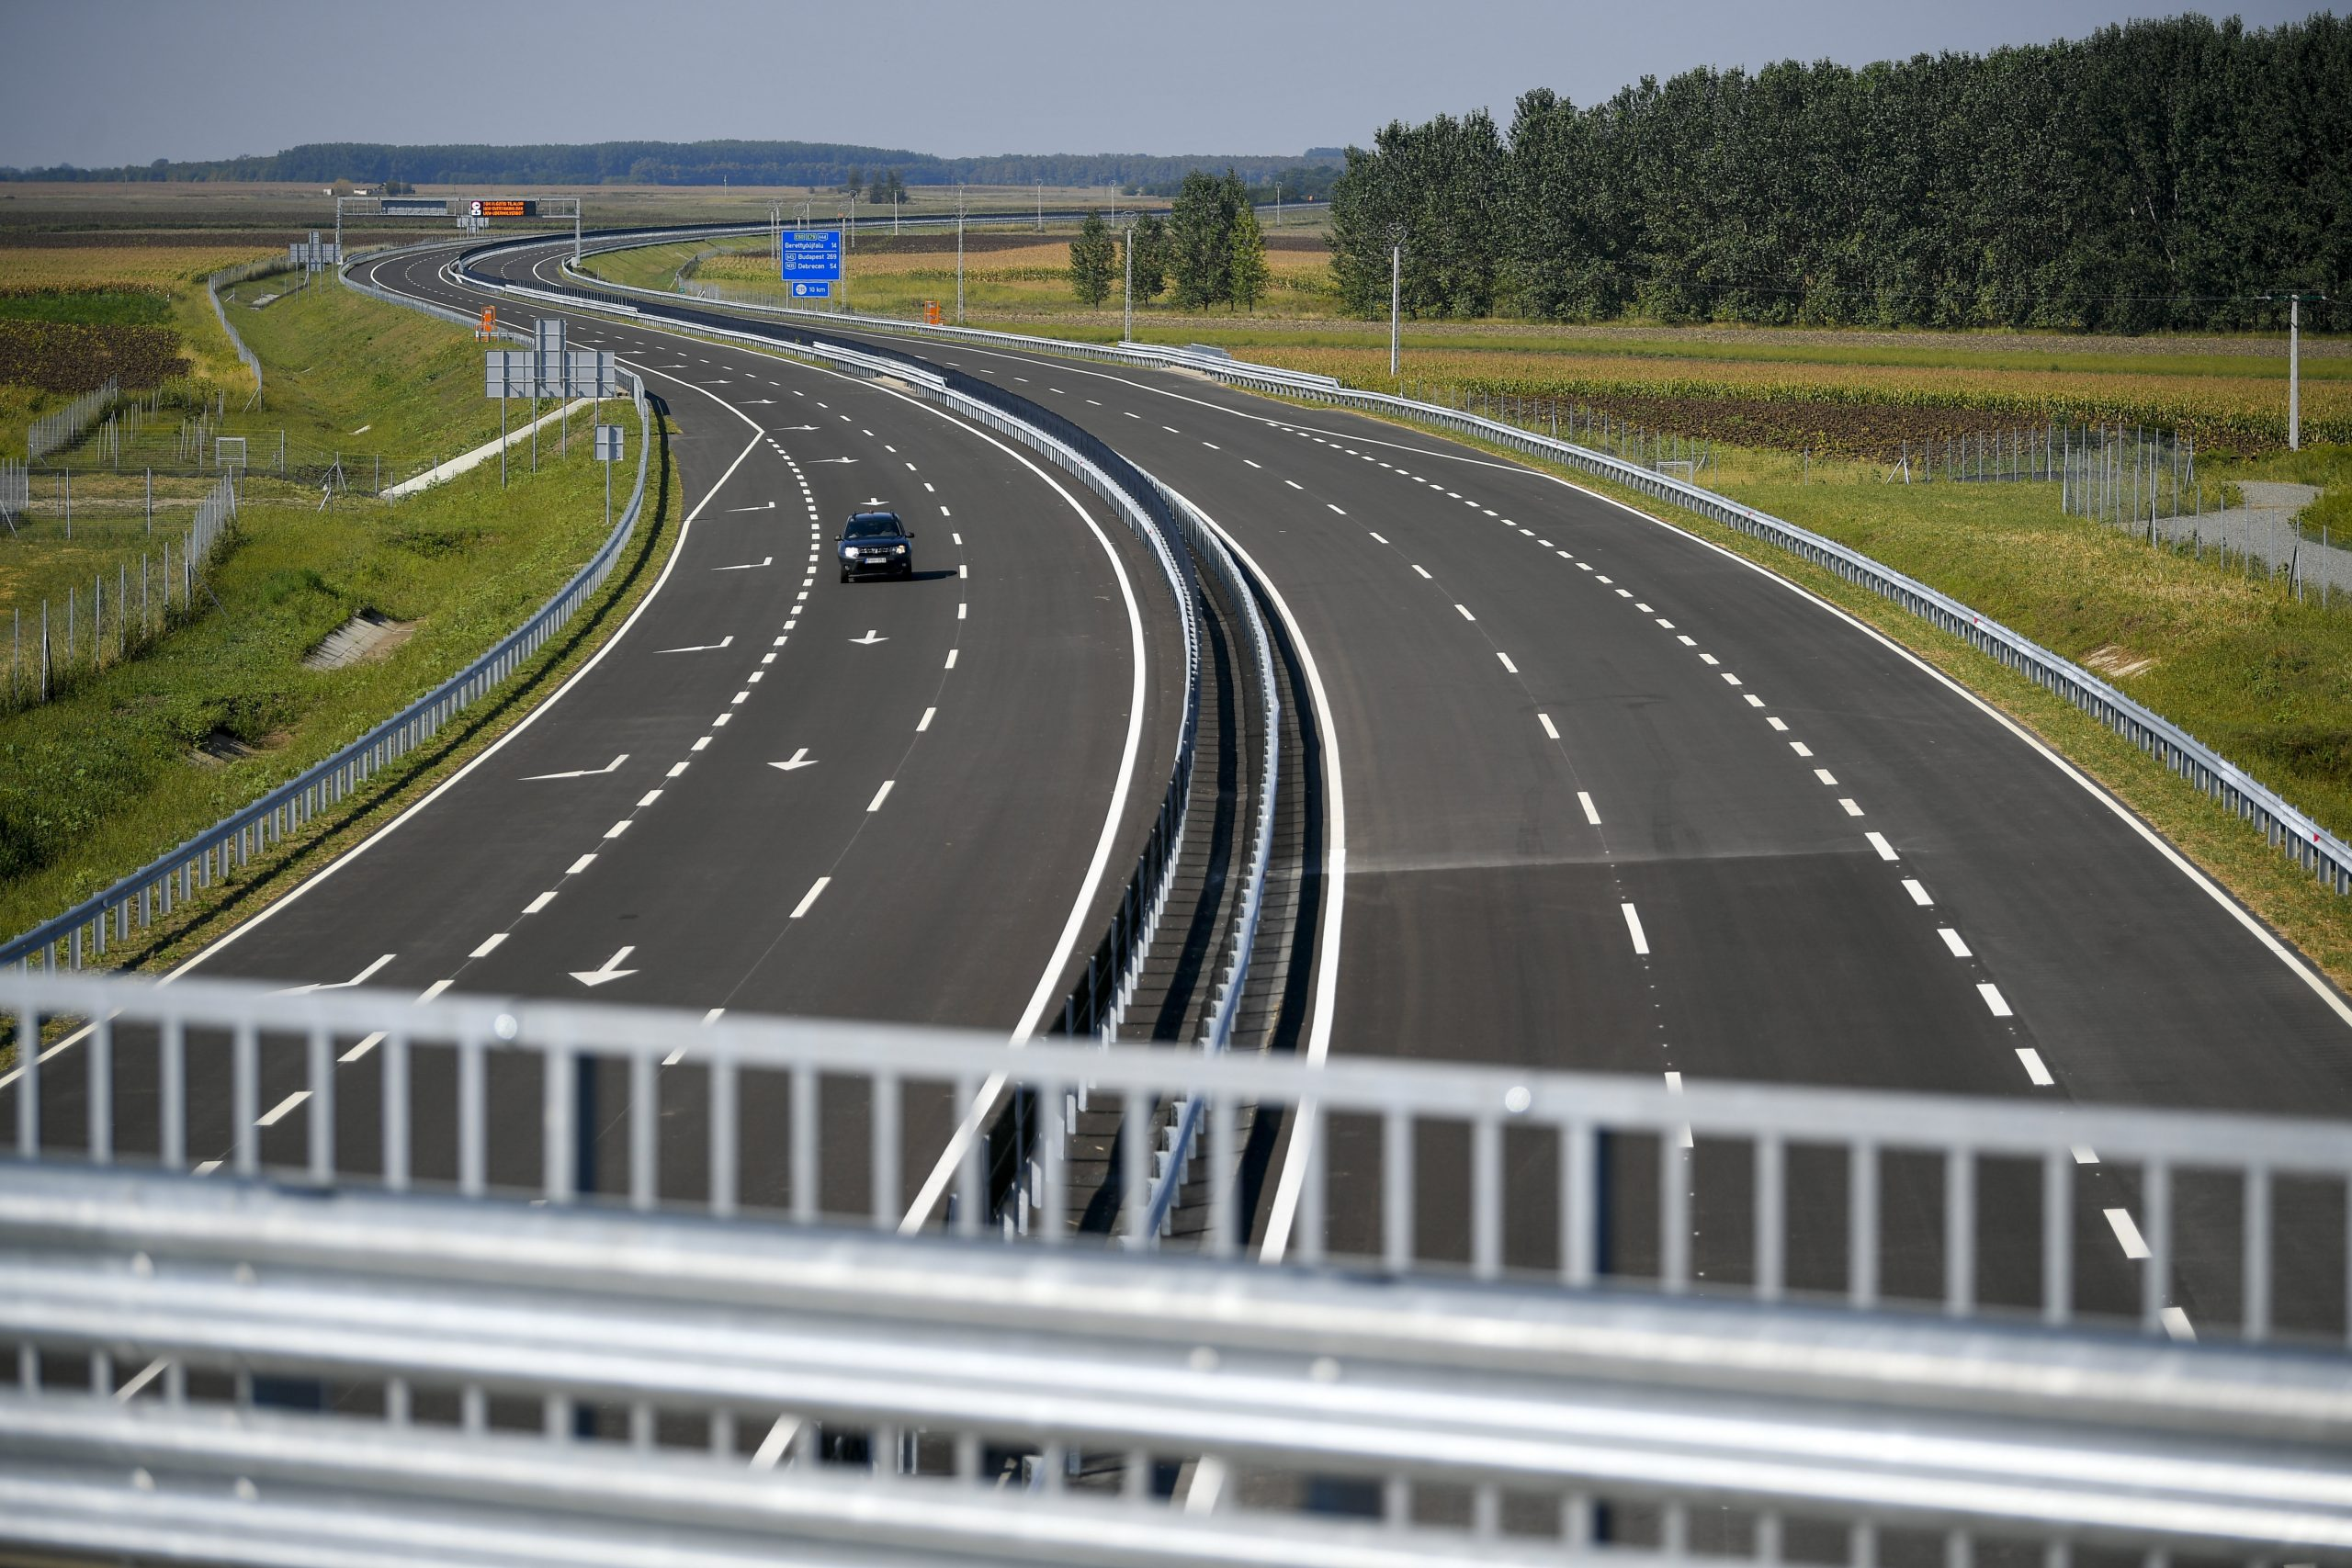 Motorway Concession: A Good Deal or Another State Asset Sell-off?